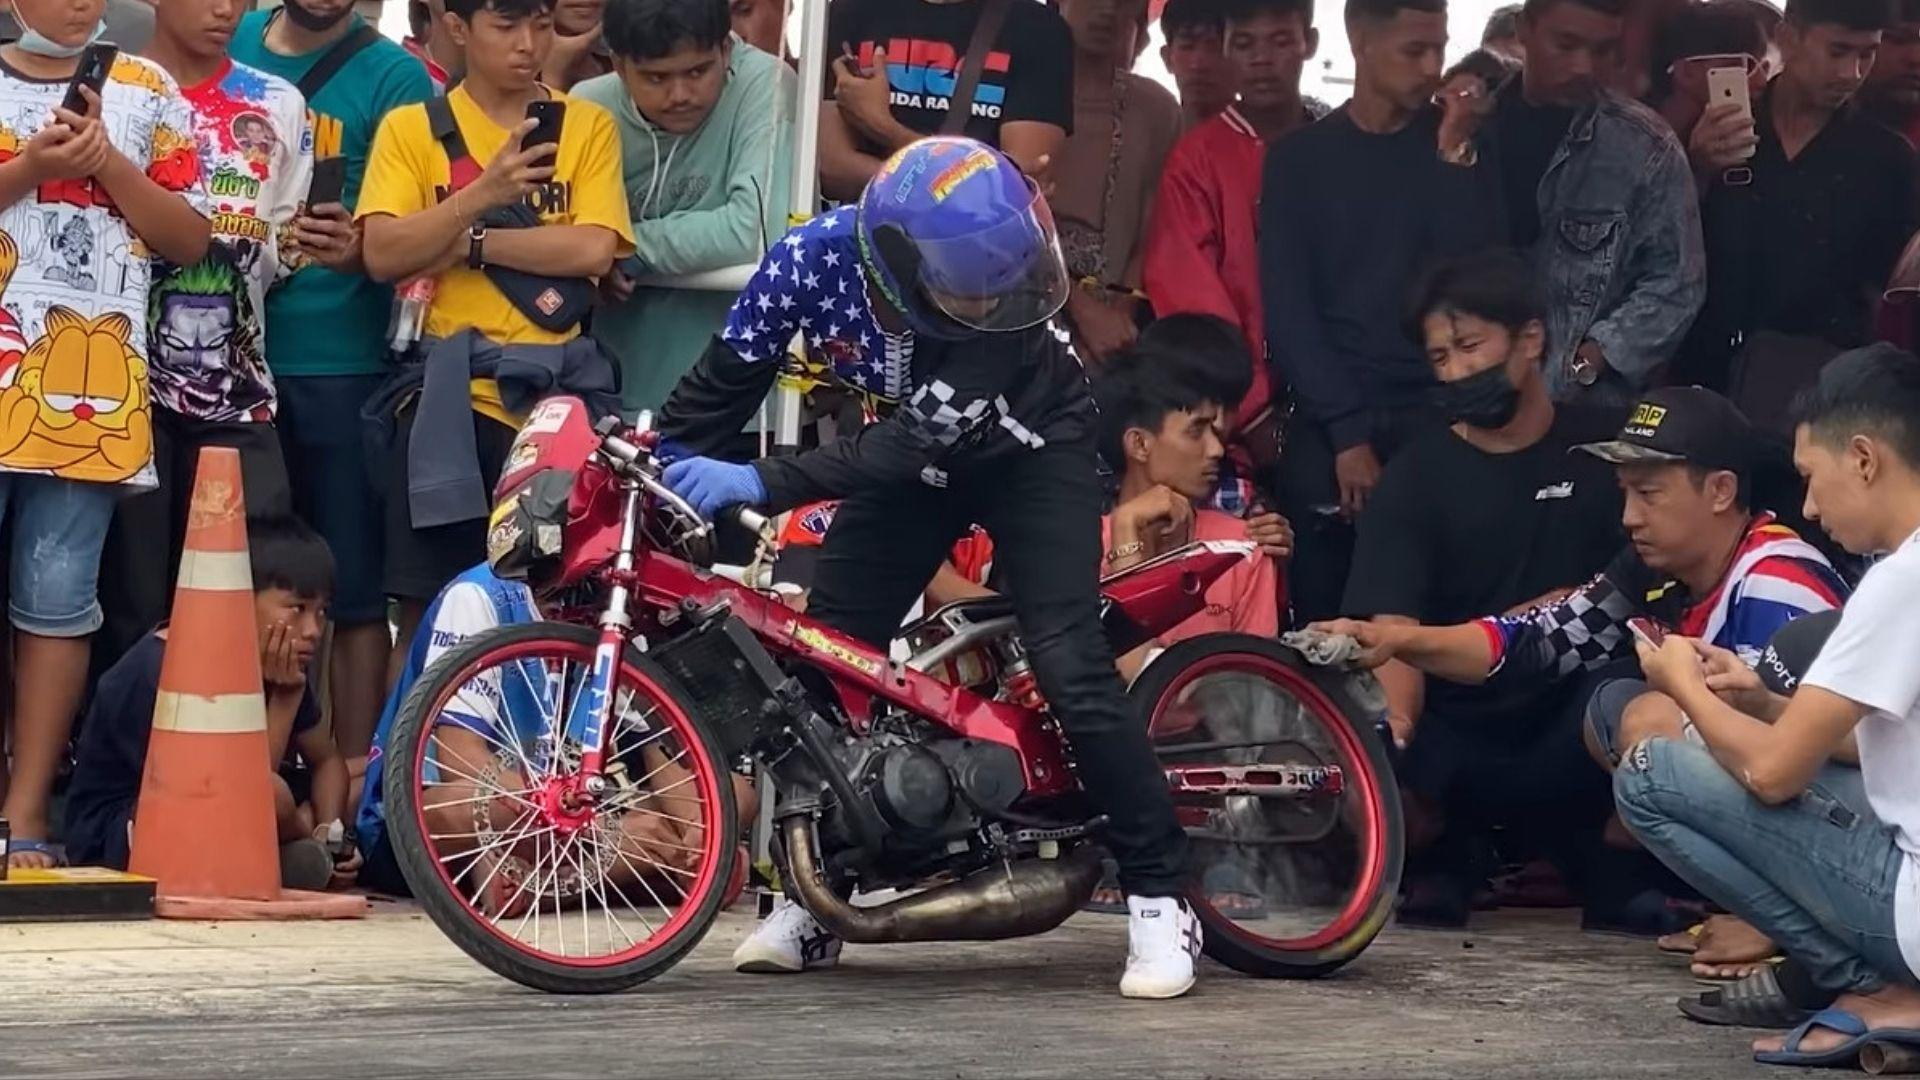 Motorcycle Monday: Thai Bike Races Are Absolutely Crazy